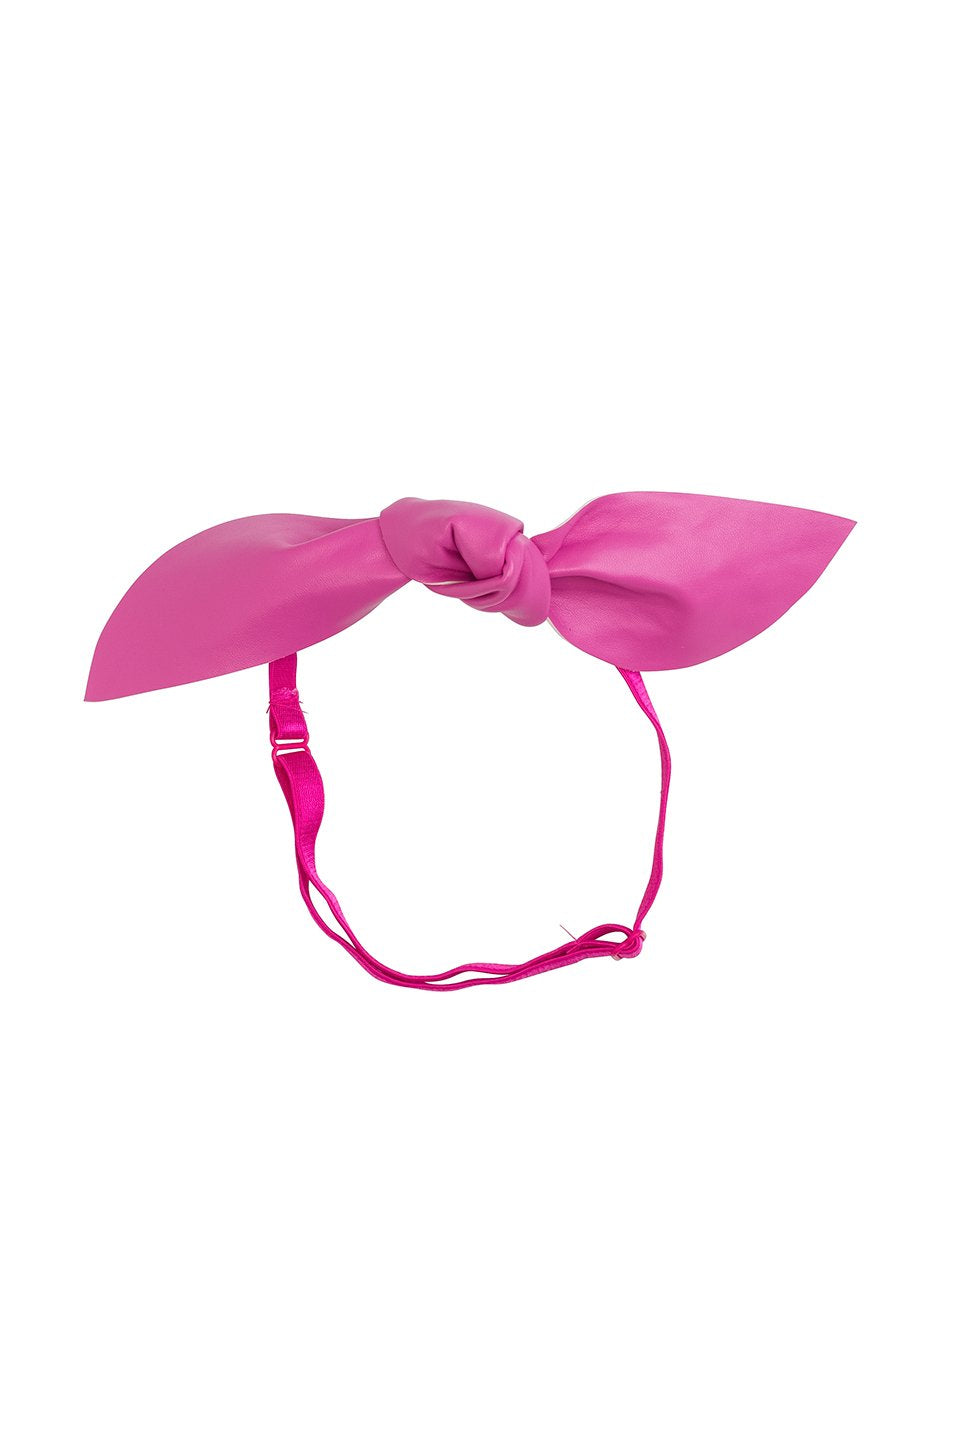 Perfect Leather  Pointy Bow Wrap - Hot Pink - PROJECT 6, modest fashion